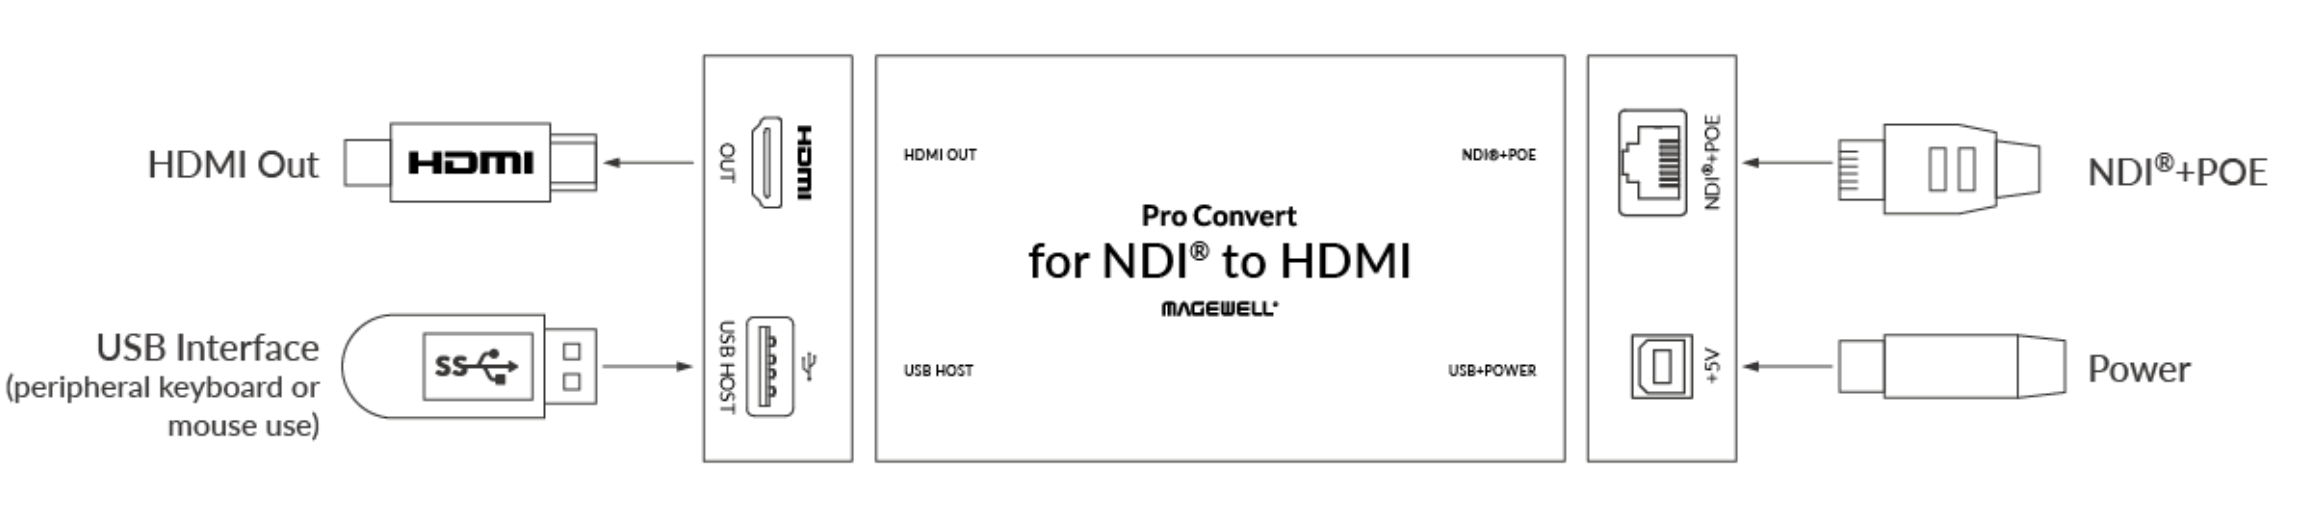 Magewell Pro Convert for NDI® to HDMI Ports